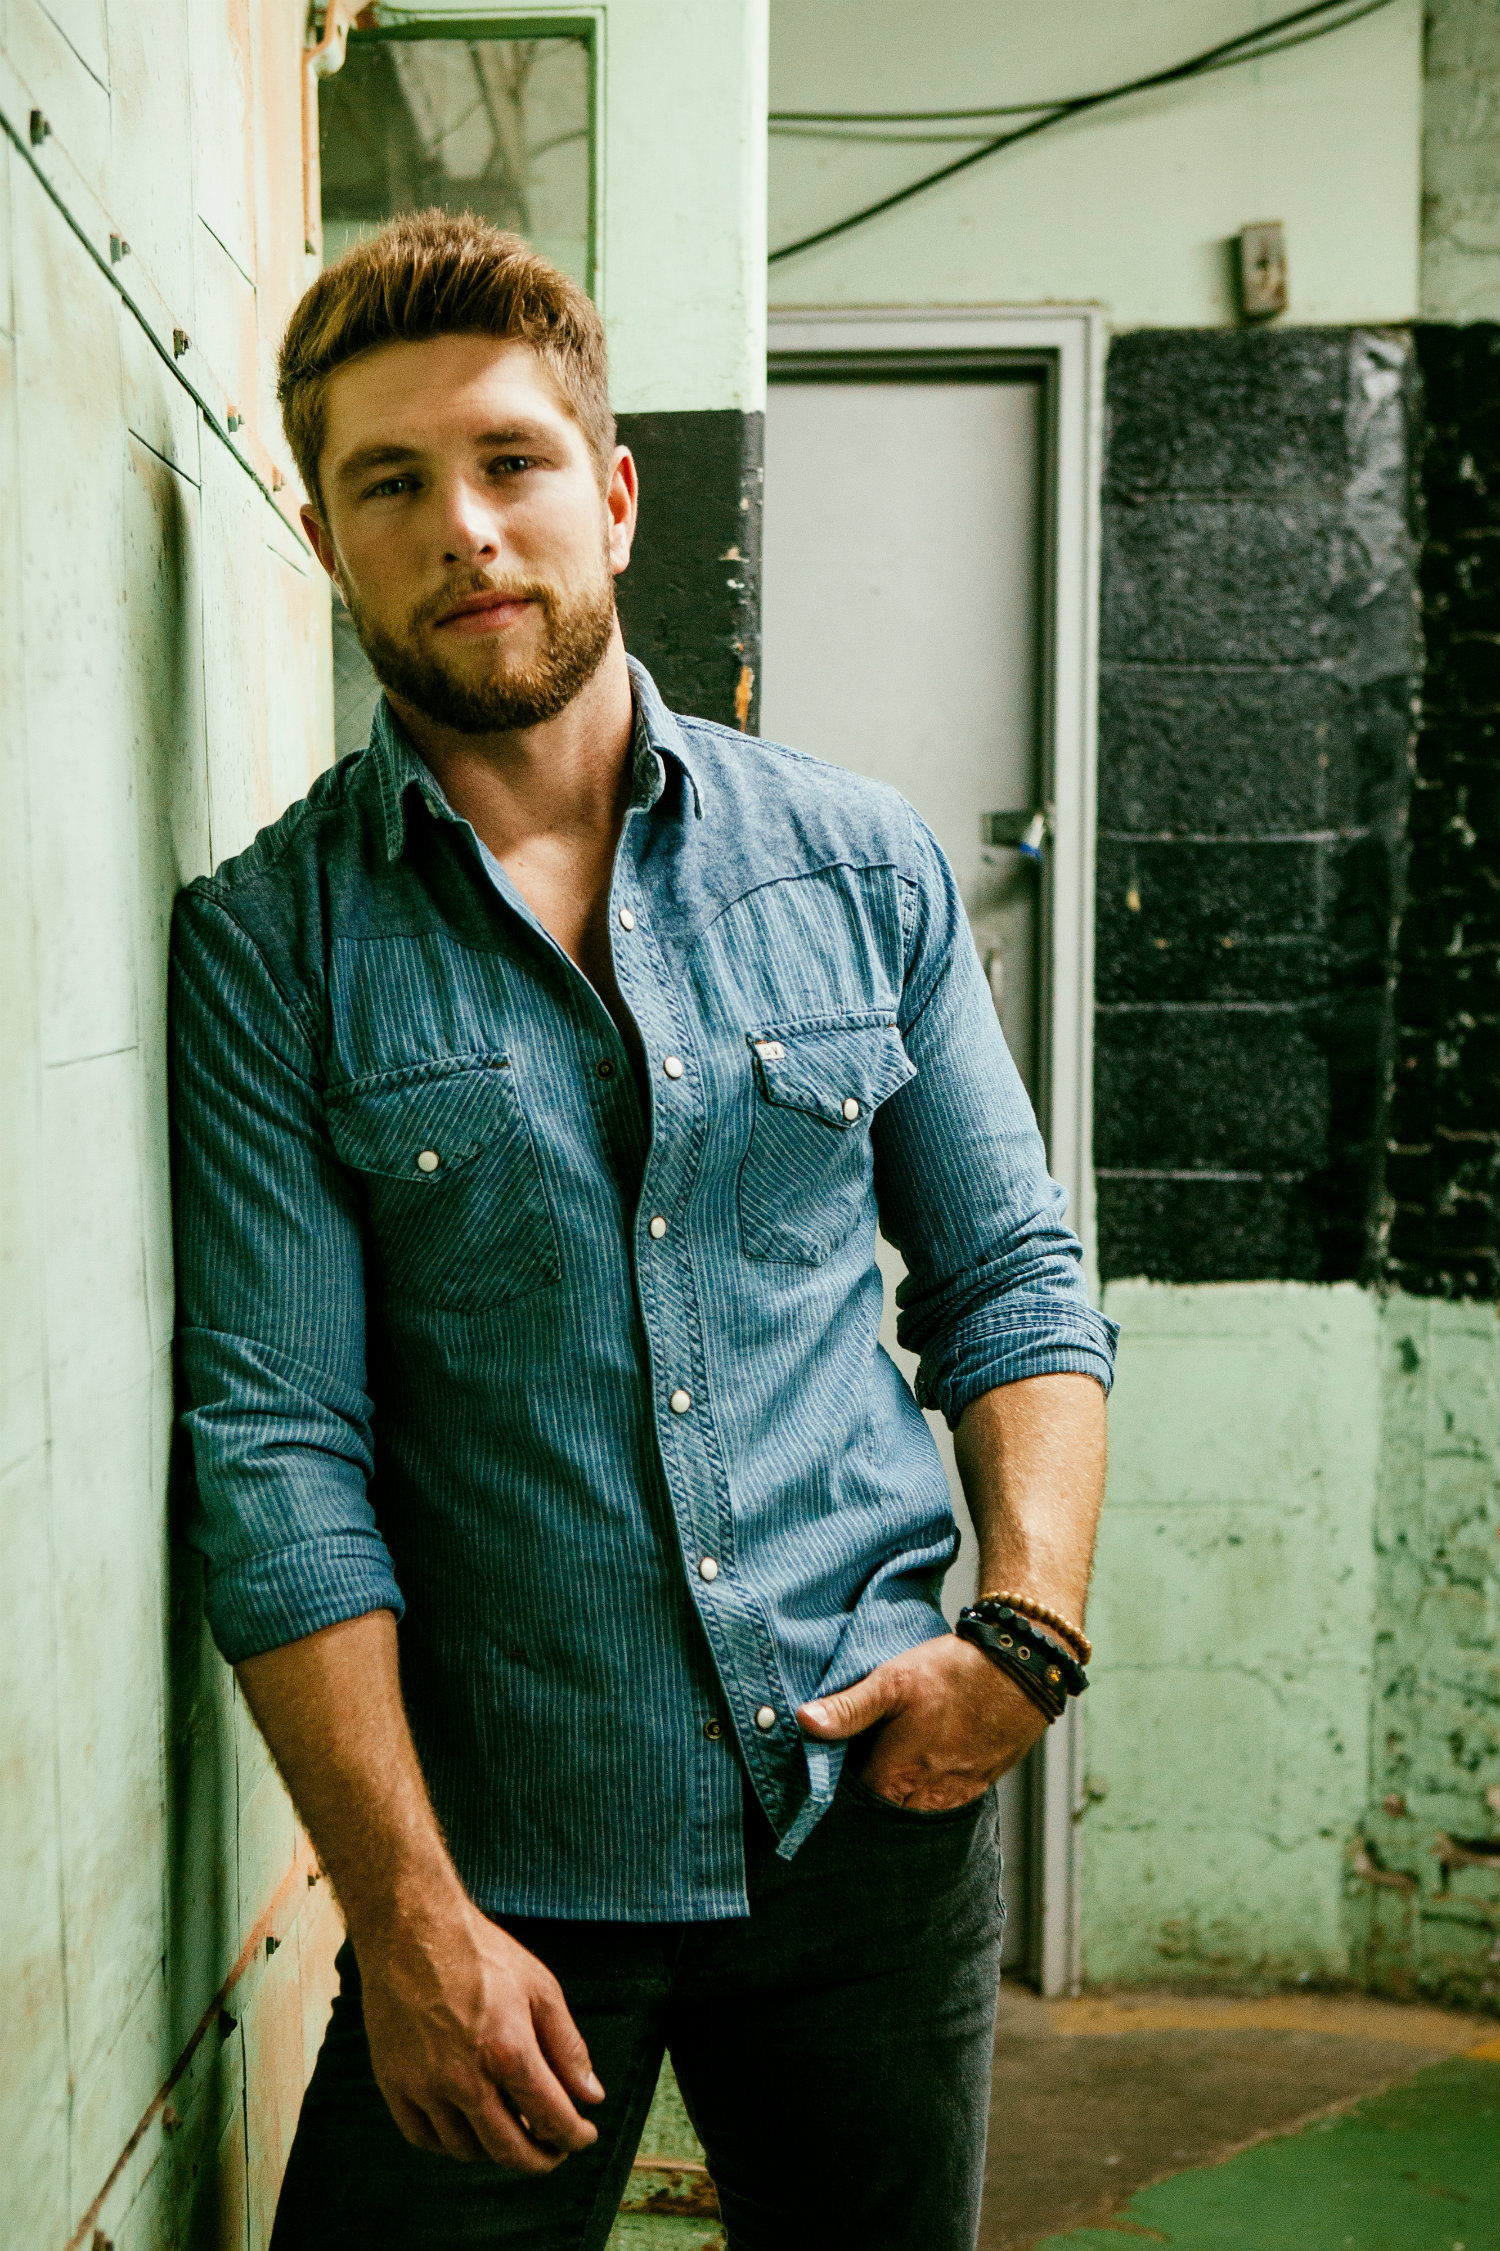 CHRIS LANE 1002